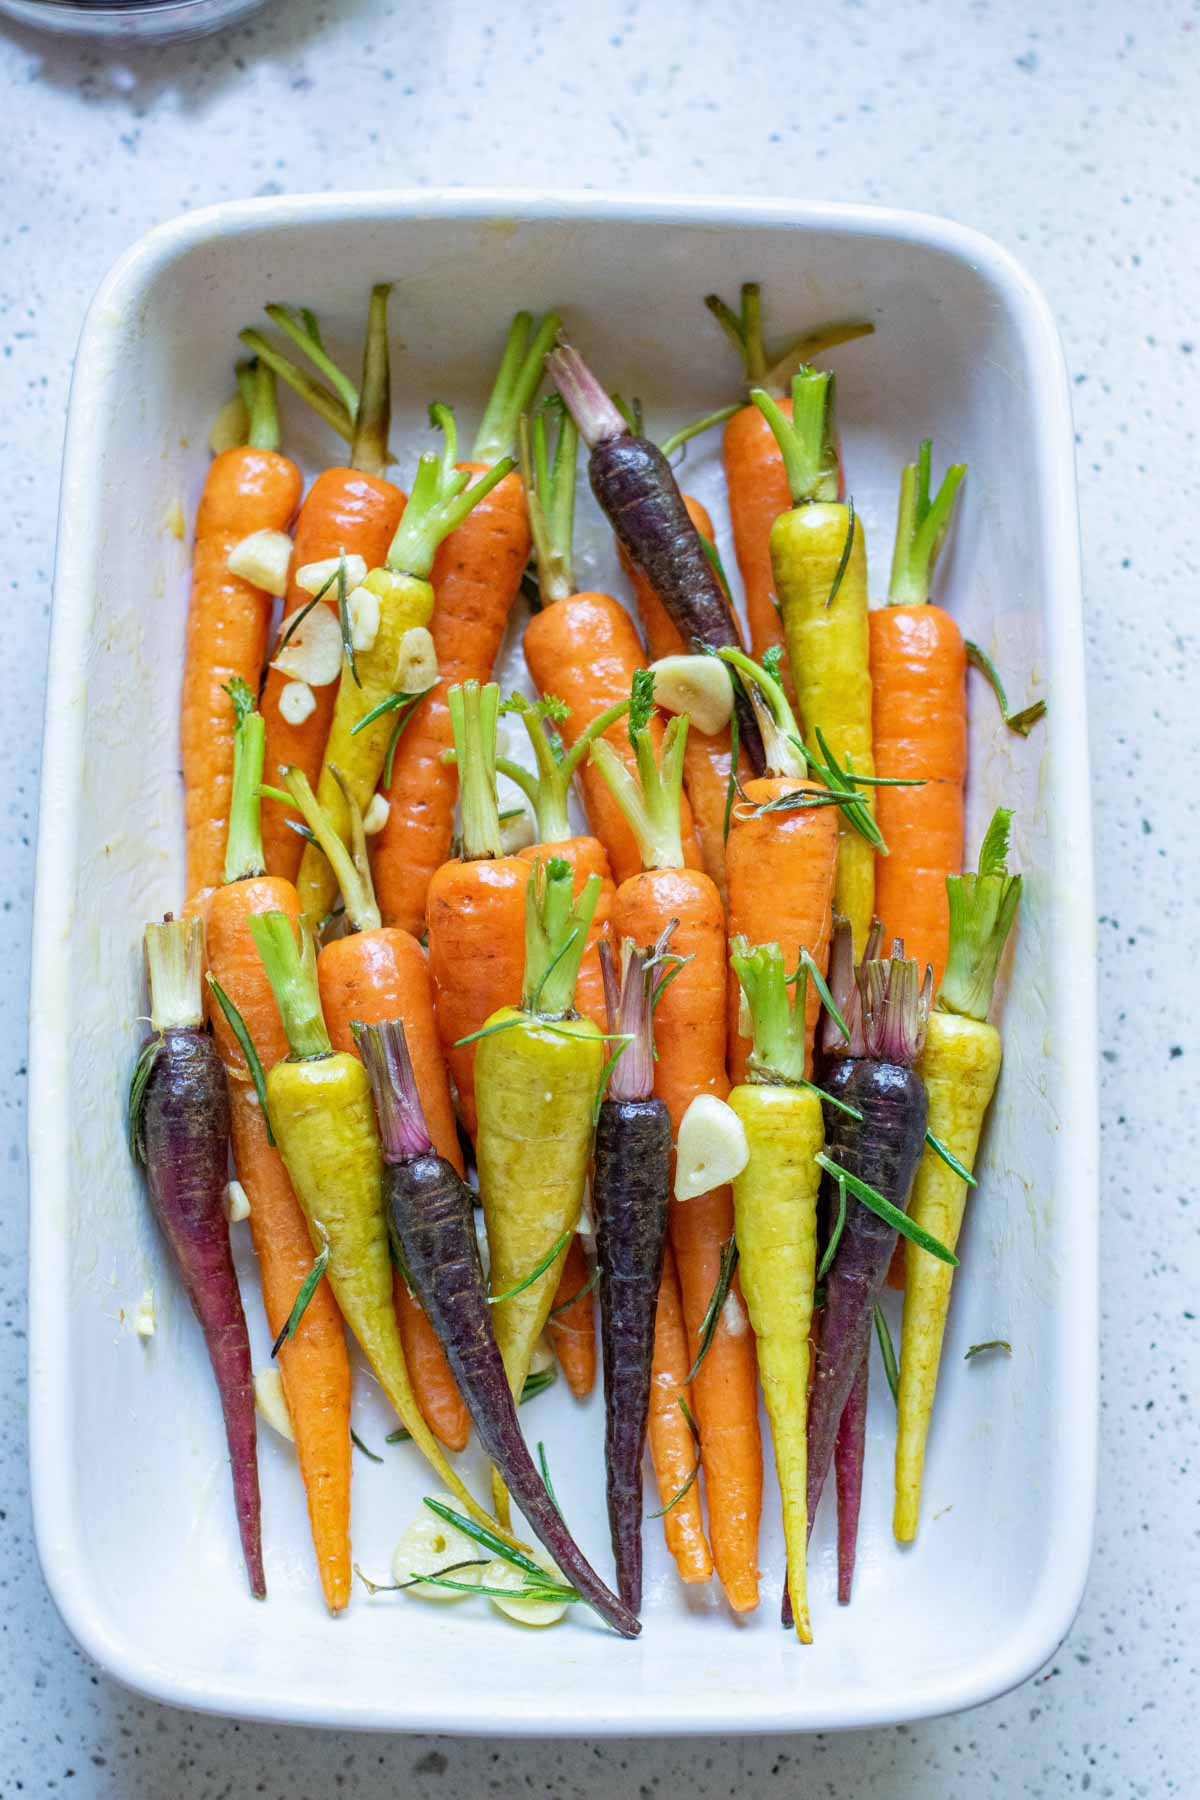 Rainbow carrots in a white rectangle baking dish